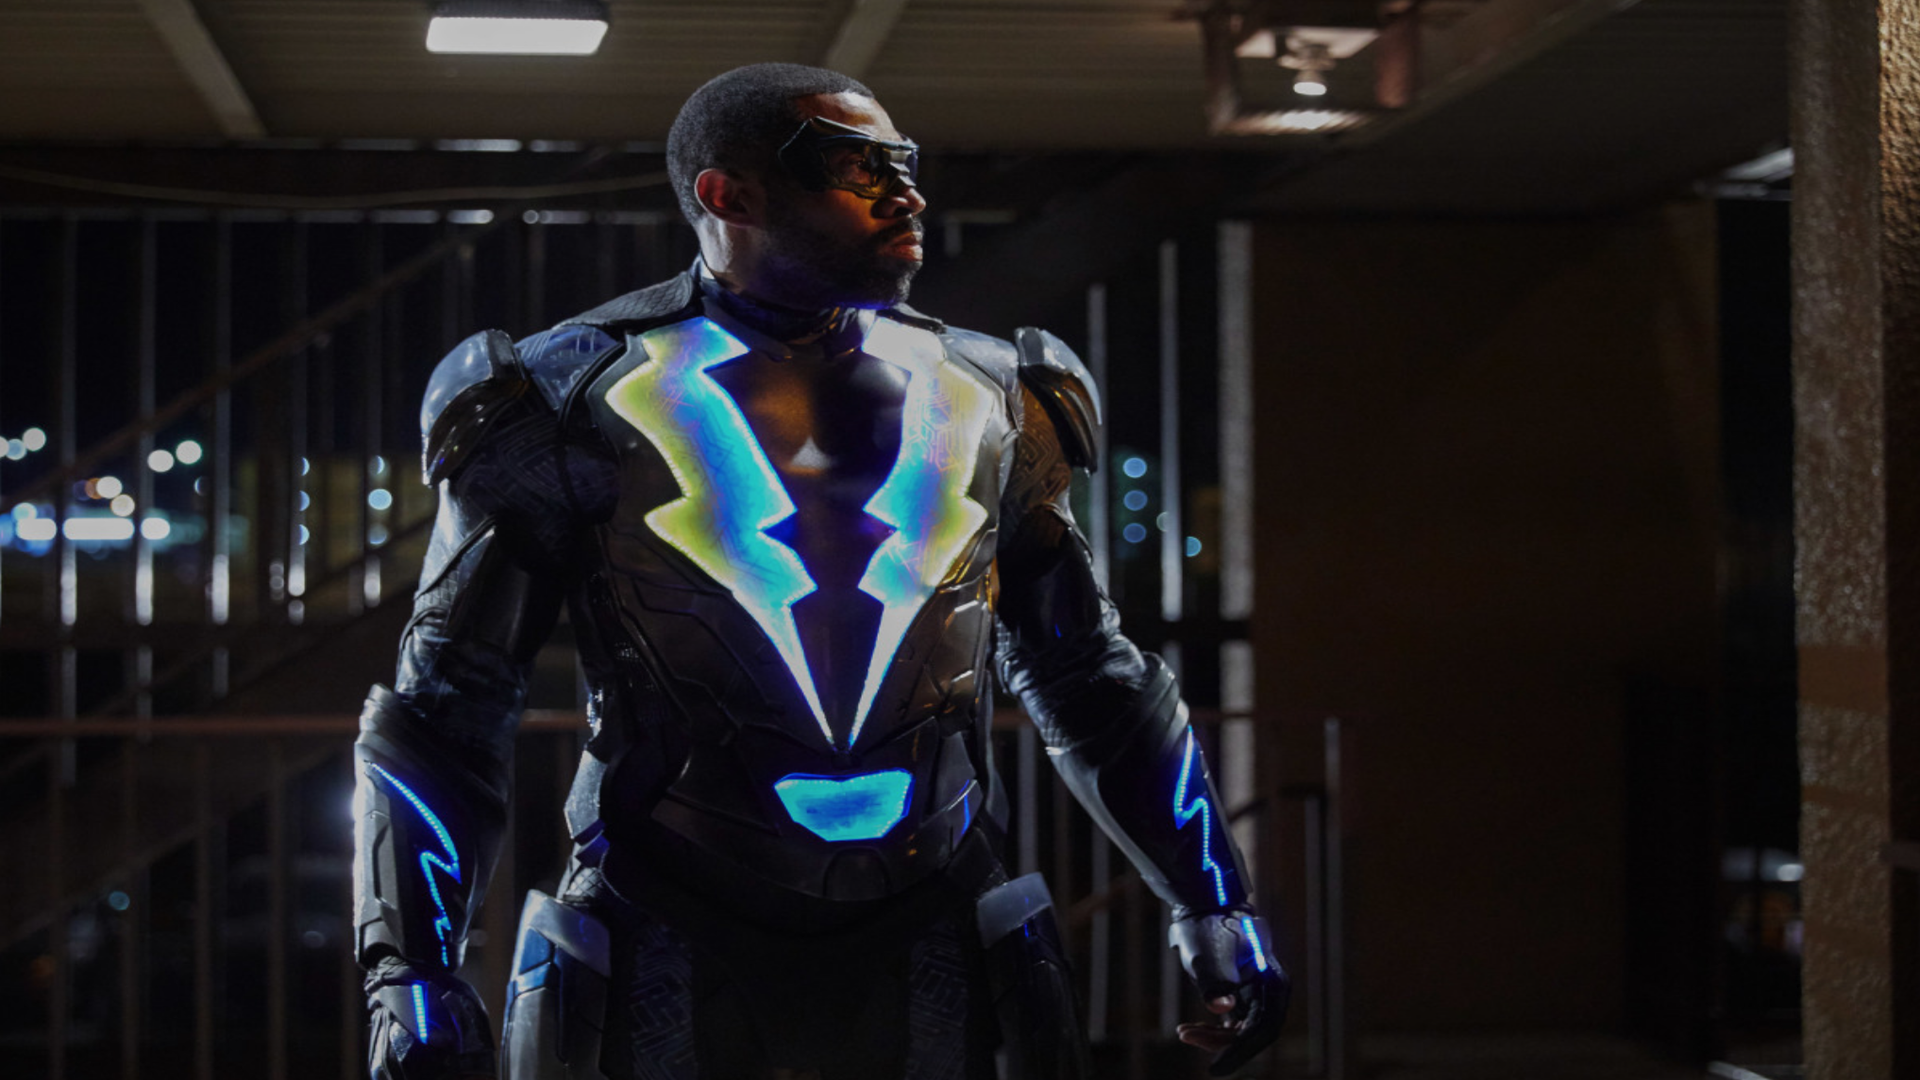 'Black Lightning' Recap: Even Black Superheroes Have To Deal With Racial Politics